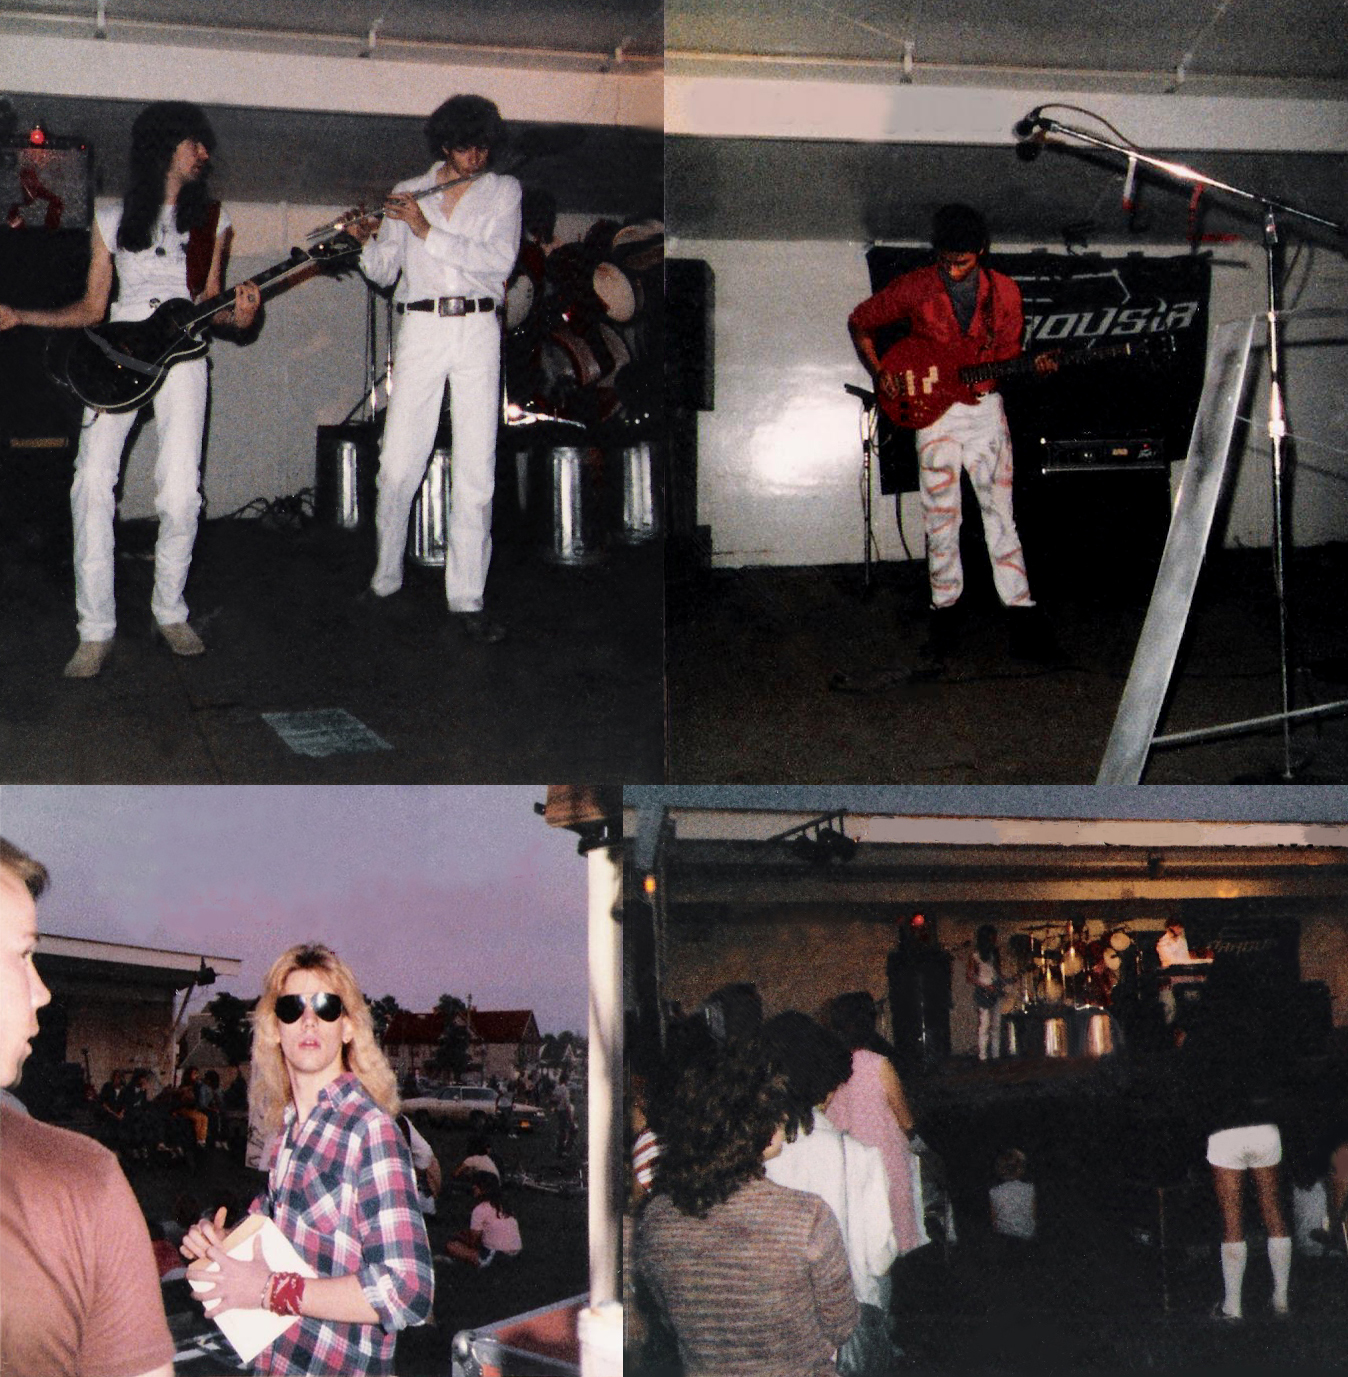 Parousia concert at Riverside Park - June 30th 1984